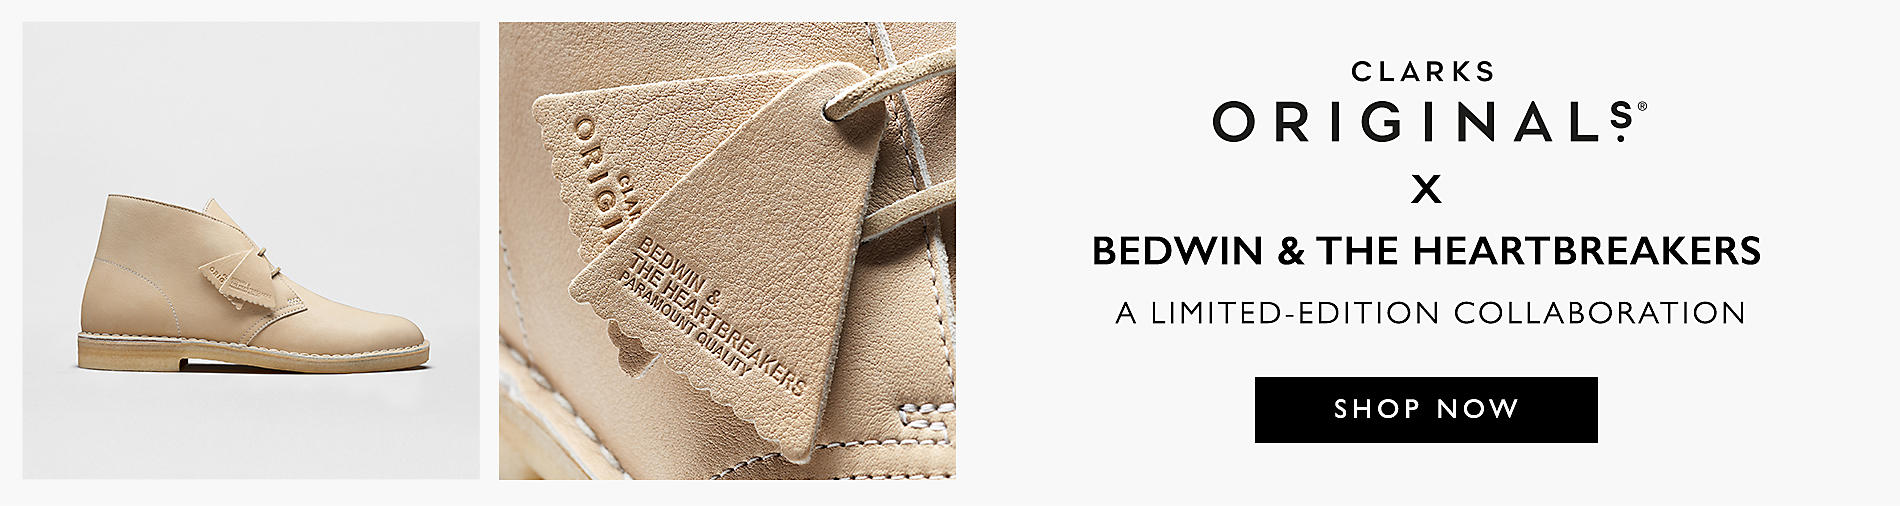 Shop the Clarks Originals x Bedwin & The Heartbreakers Collaboration